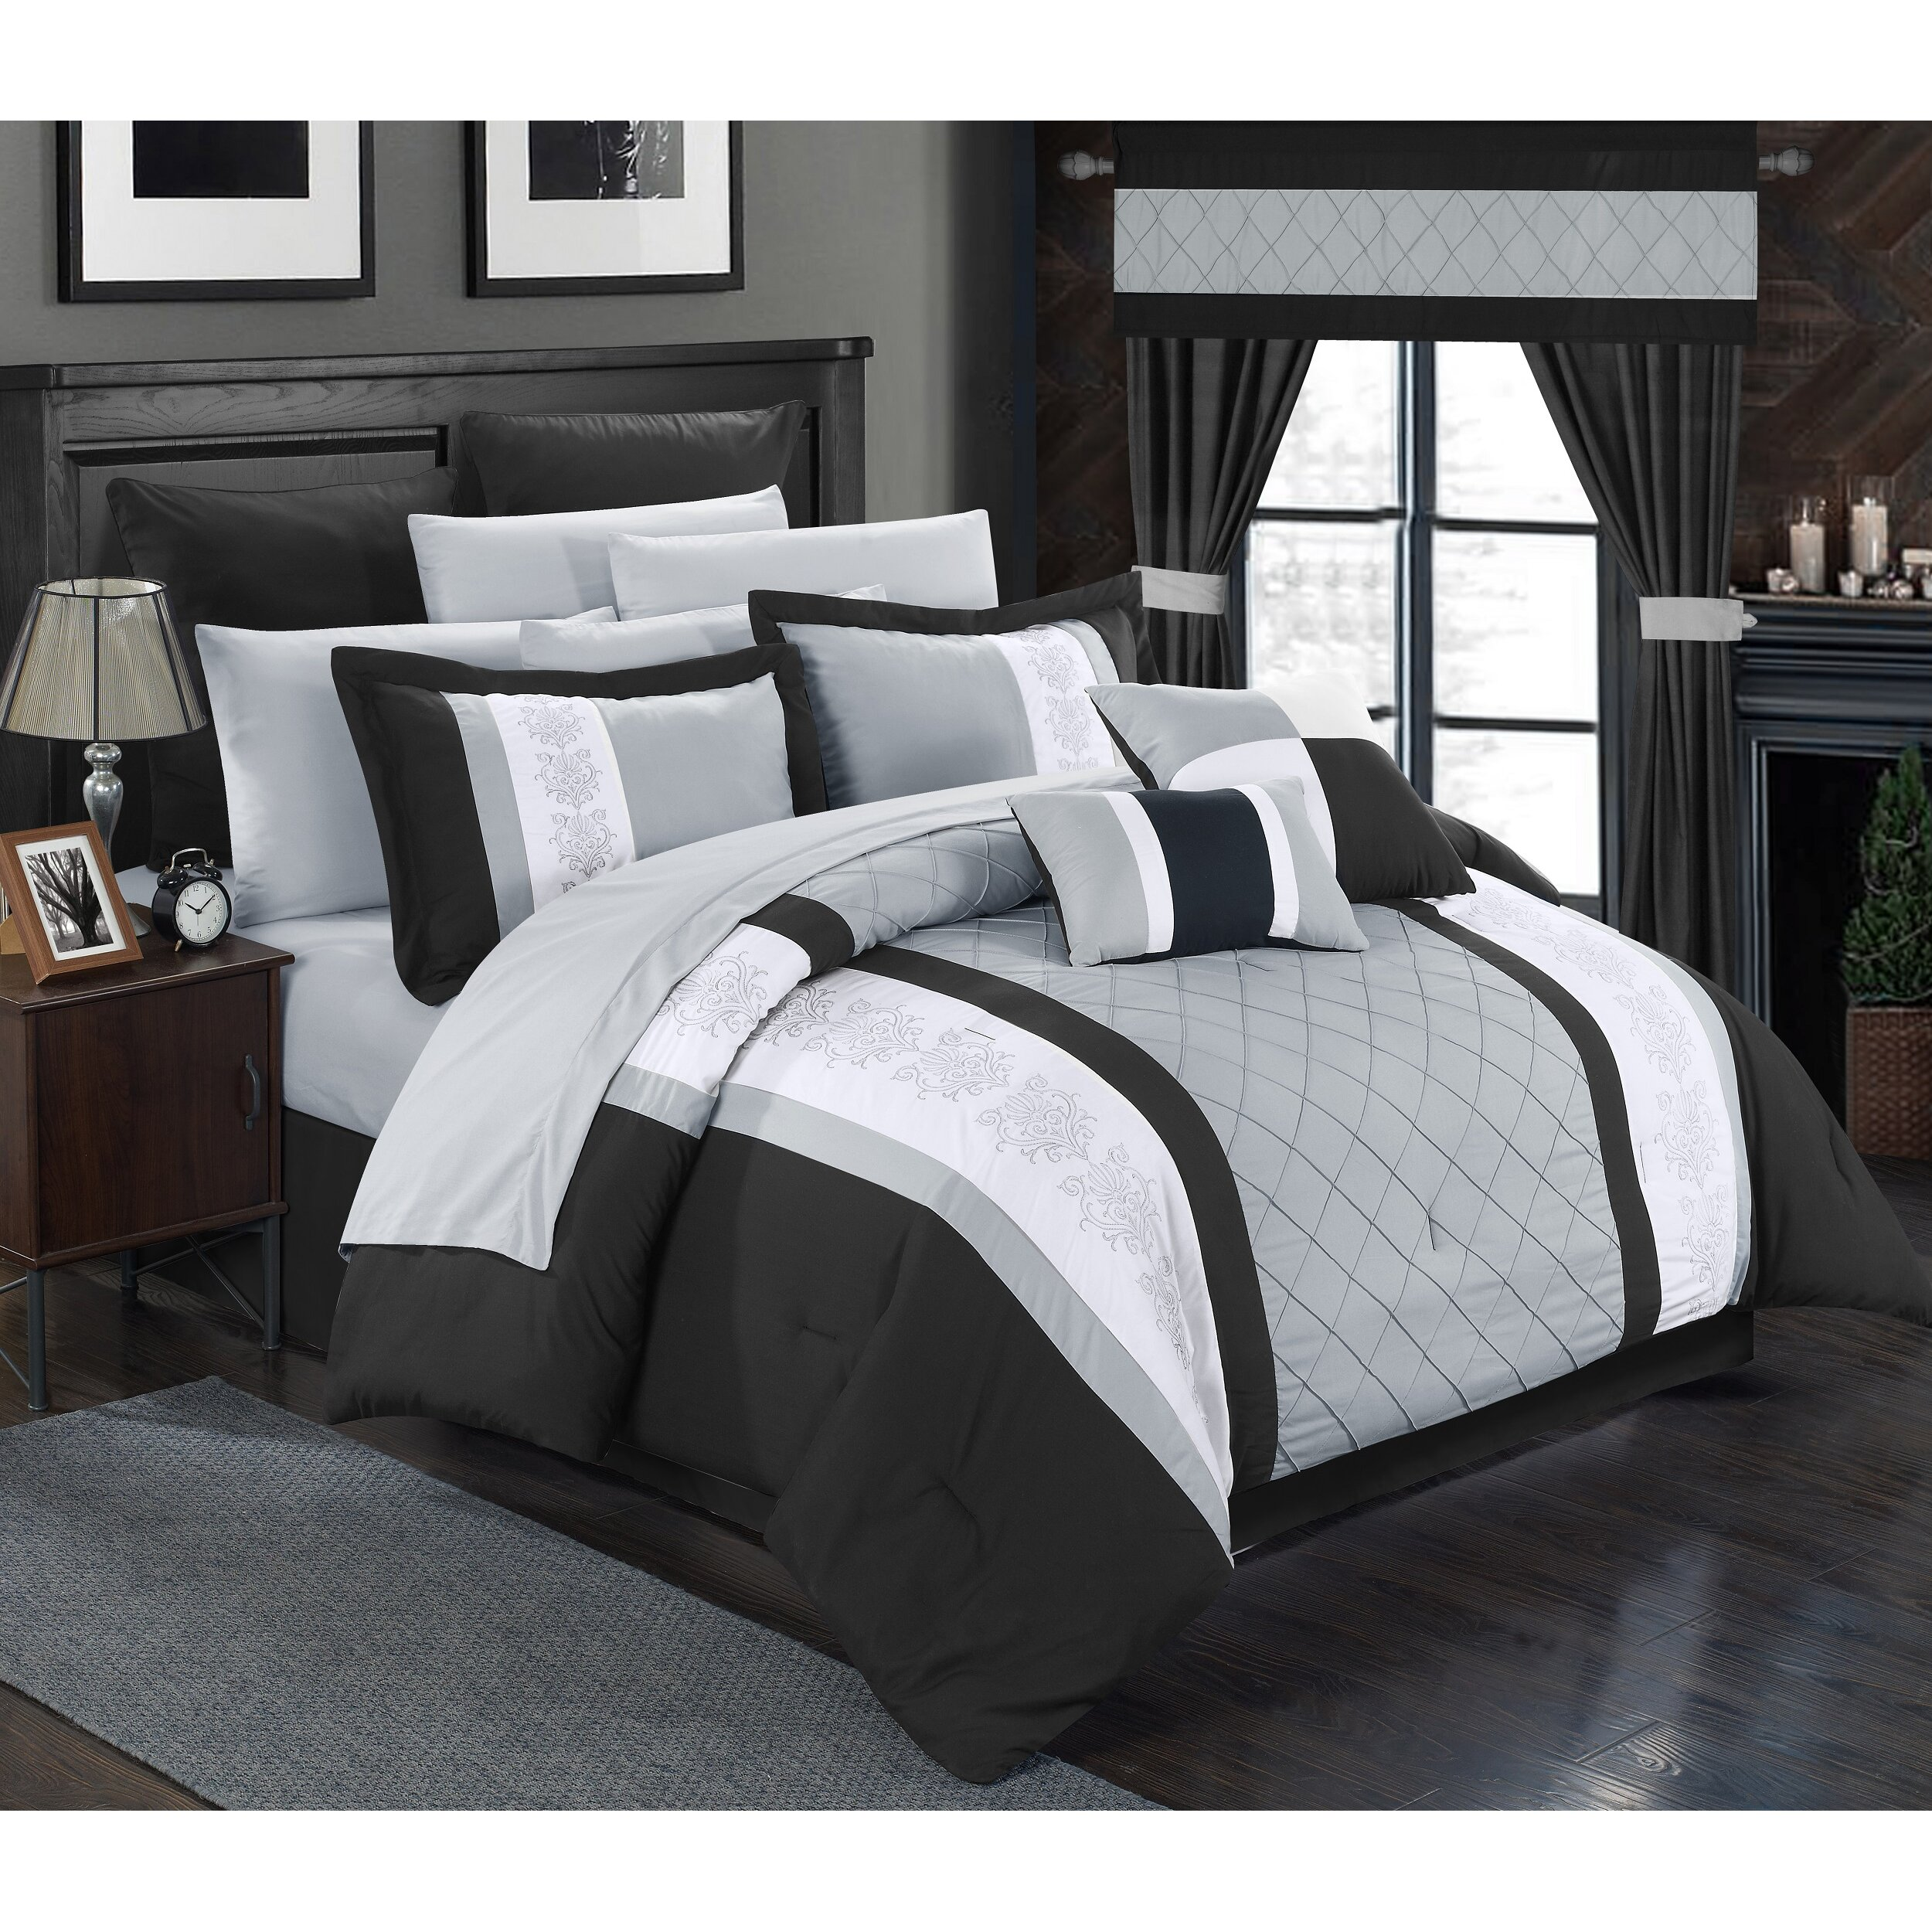 complete bed sets chic home danielle 24 comforter set amp reviews wayfair 11182